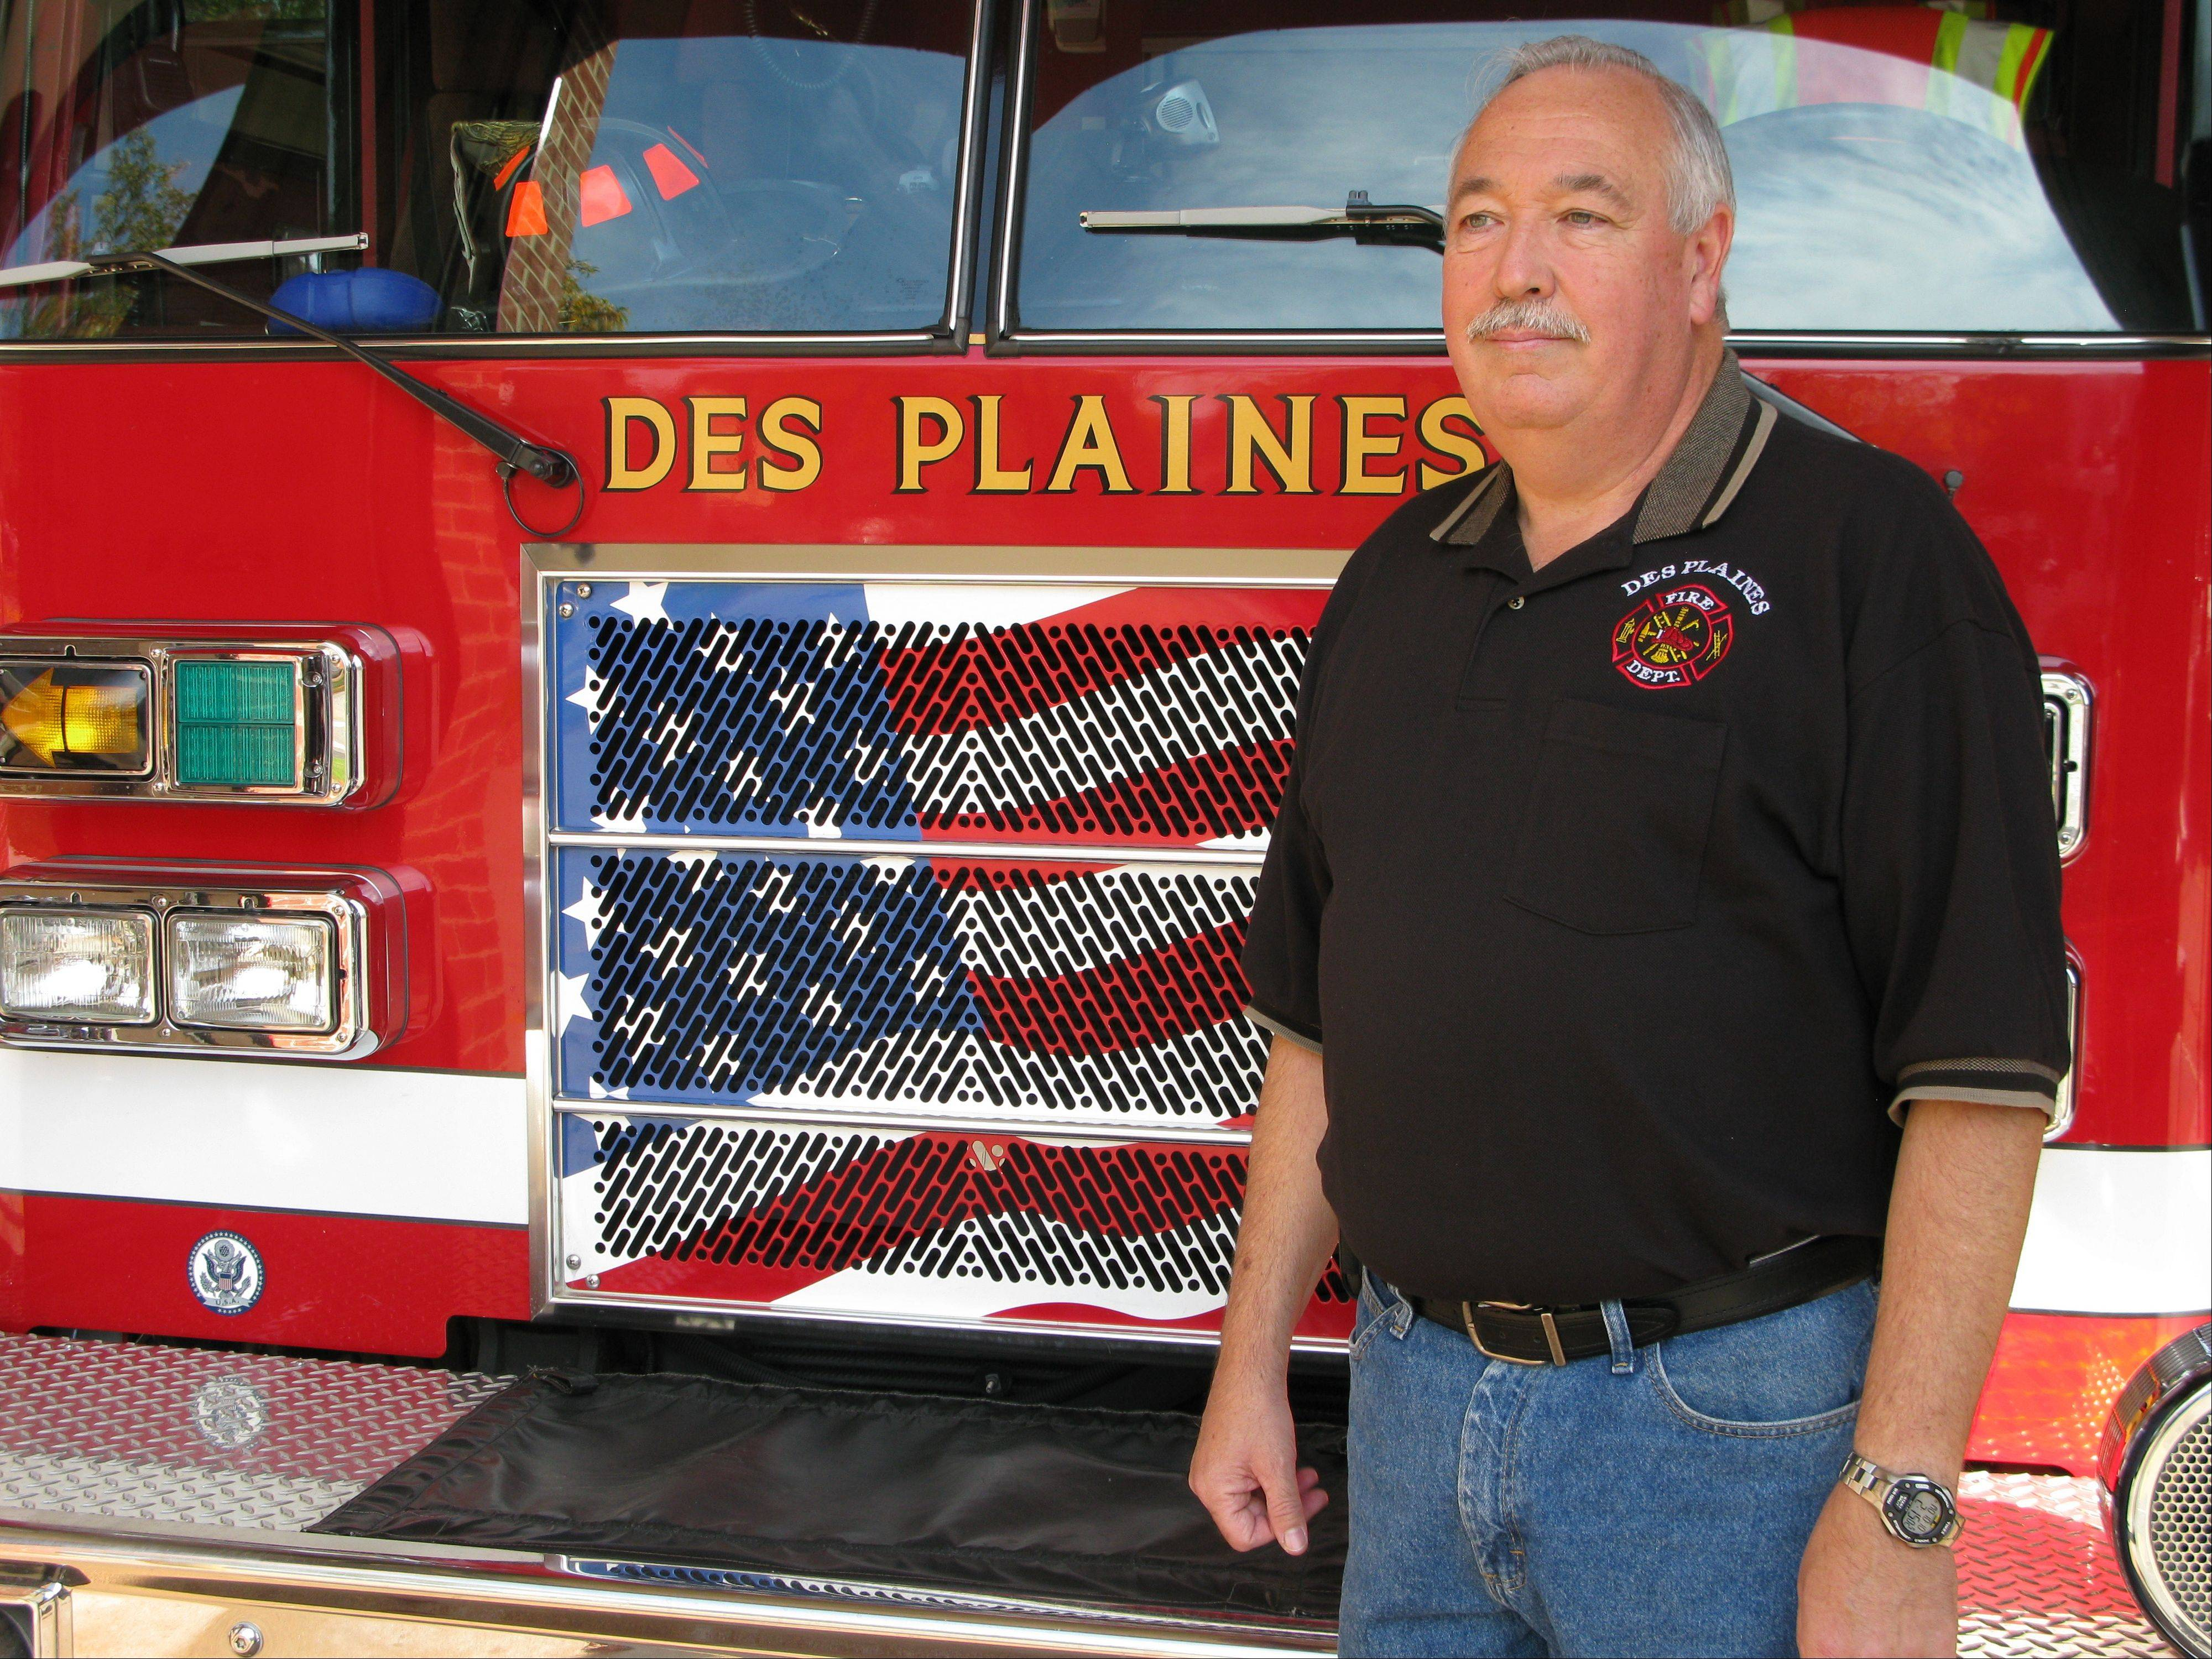 Retired Des Plaines Fire Chief Tom Farinella was among the first responders to the American Airlines Flight 191 crash on May 25, 1979.